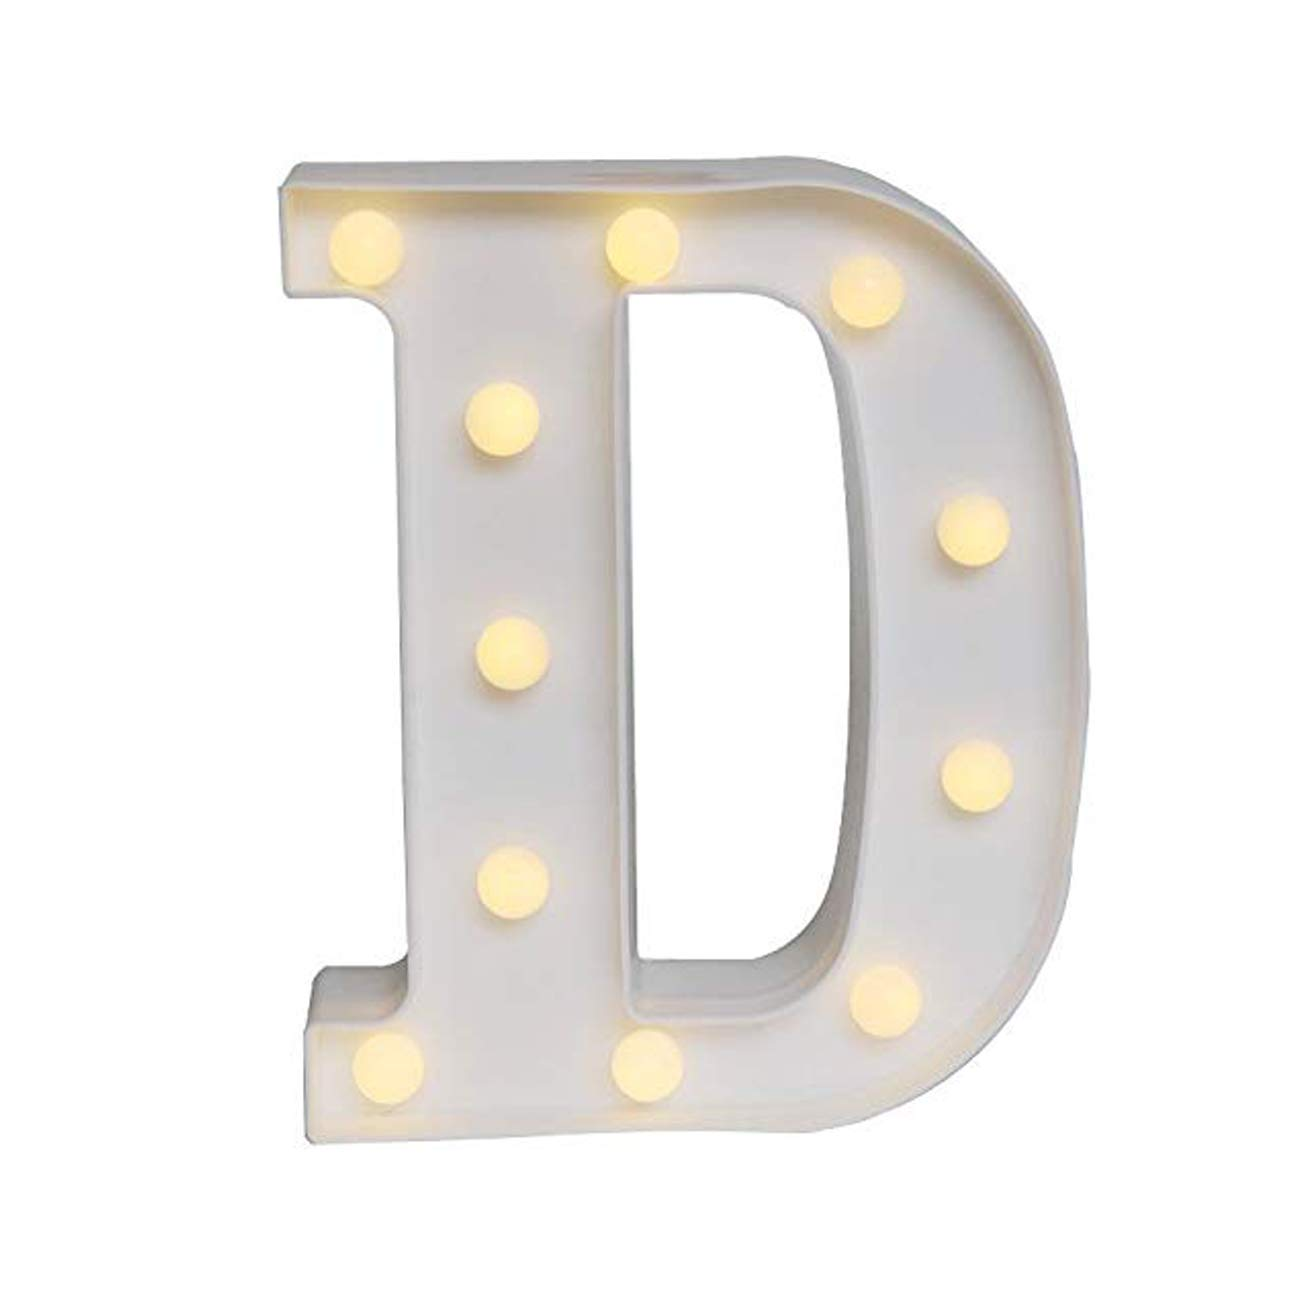 Sunnyglade White Marquee LED Alphabet Lights Arabic Numerals Lights for Party Home Bar Wedding Decor, Alphabet Wall Decoration Letter Lights (D)